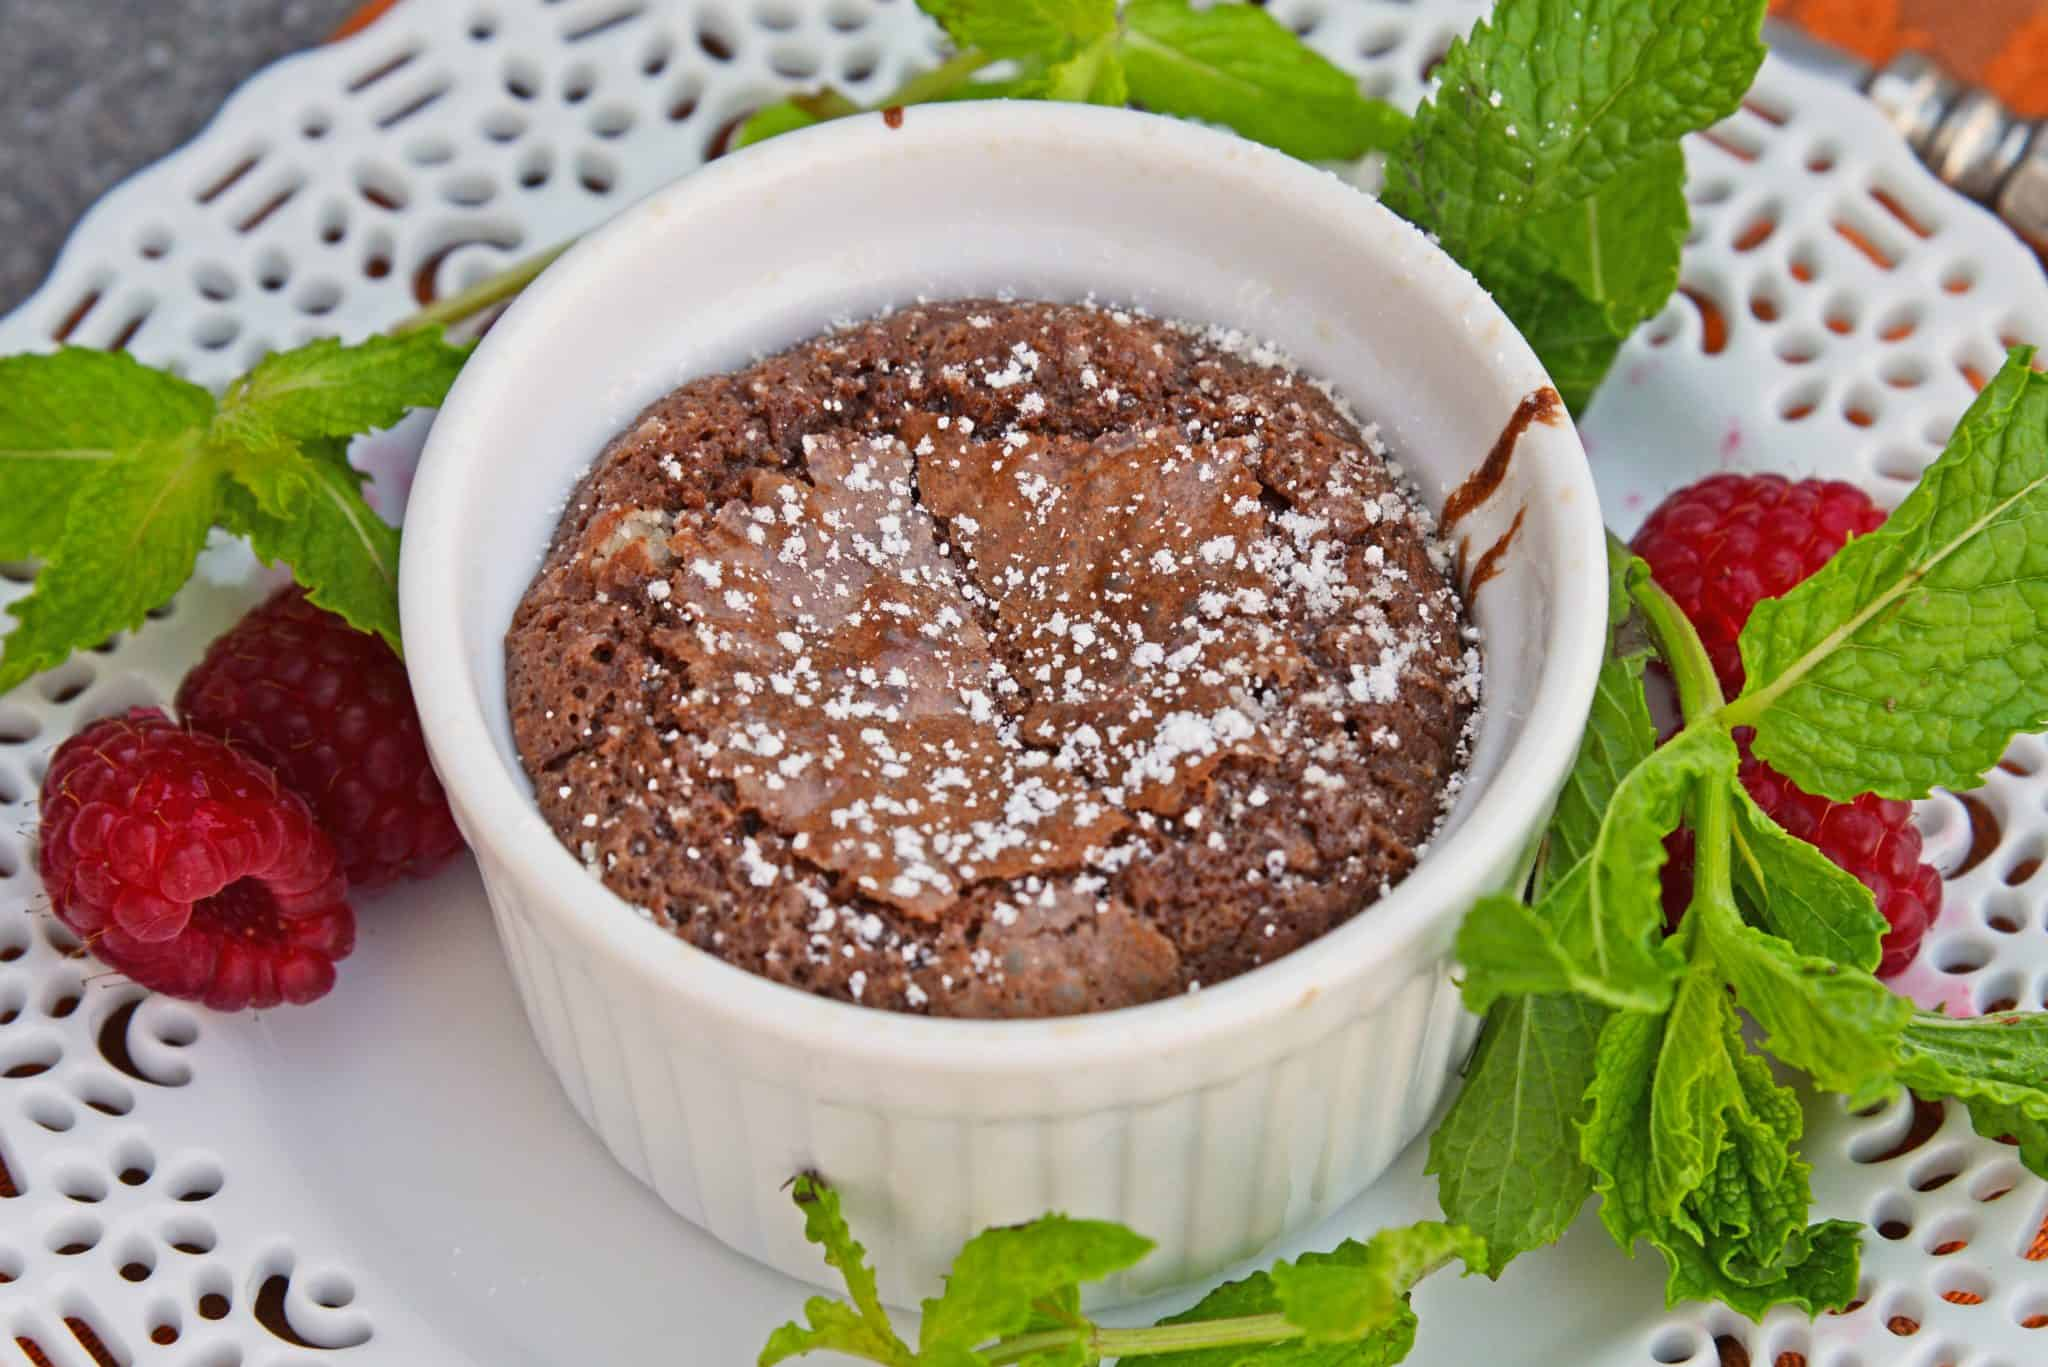 Red Wine Chocolate Lava Cake is so easy to make at home! This molten lava cake comes out of the oven piping hot in just about 30 minutes. #lavacakerecipe #moltenlavacake #chocolatecake www.savoryexperiments.com